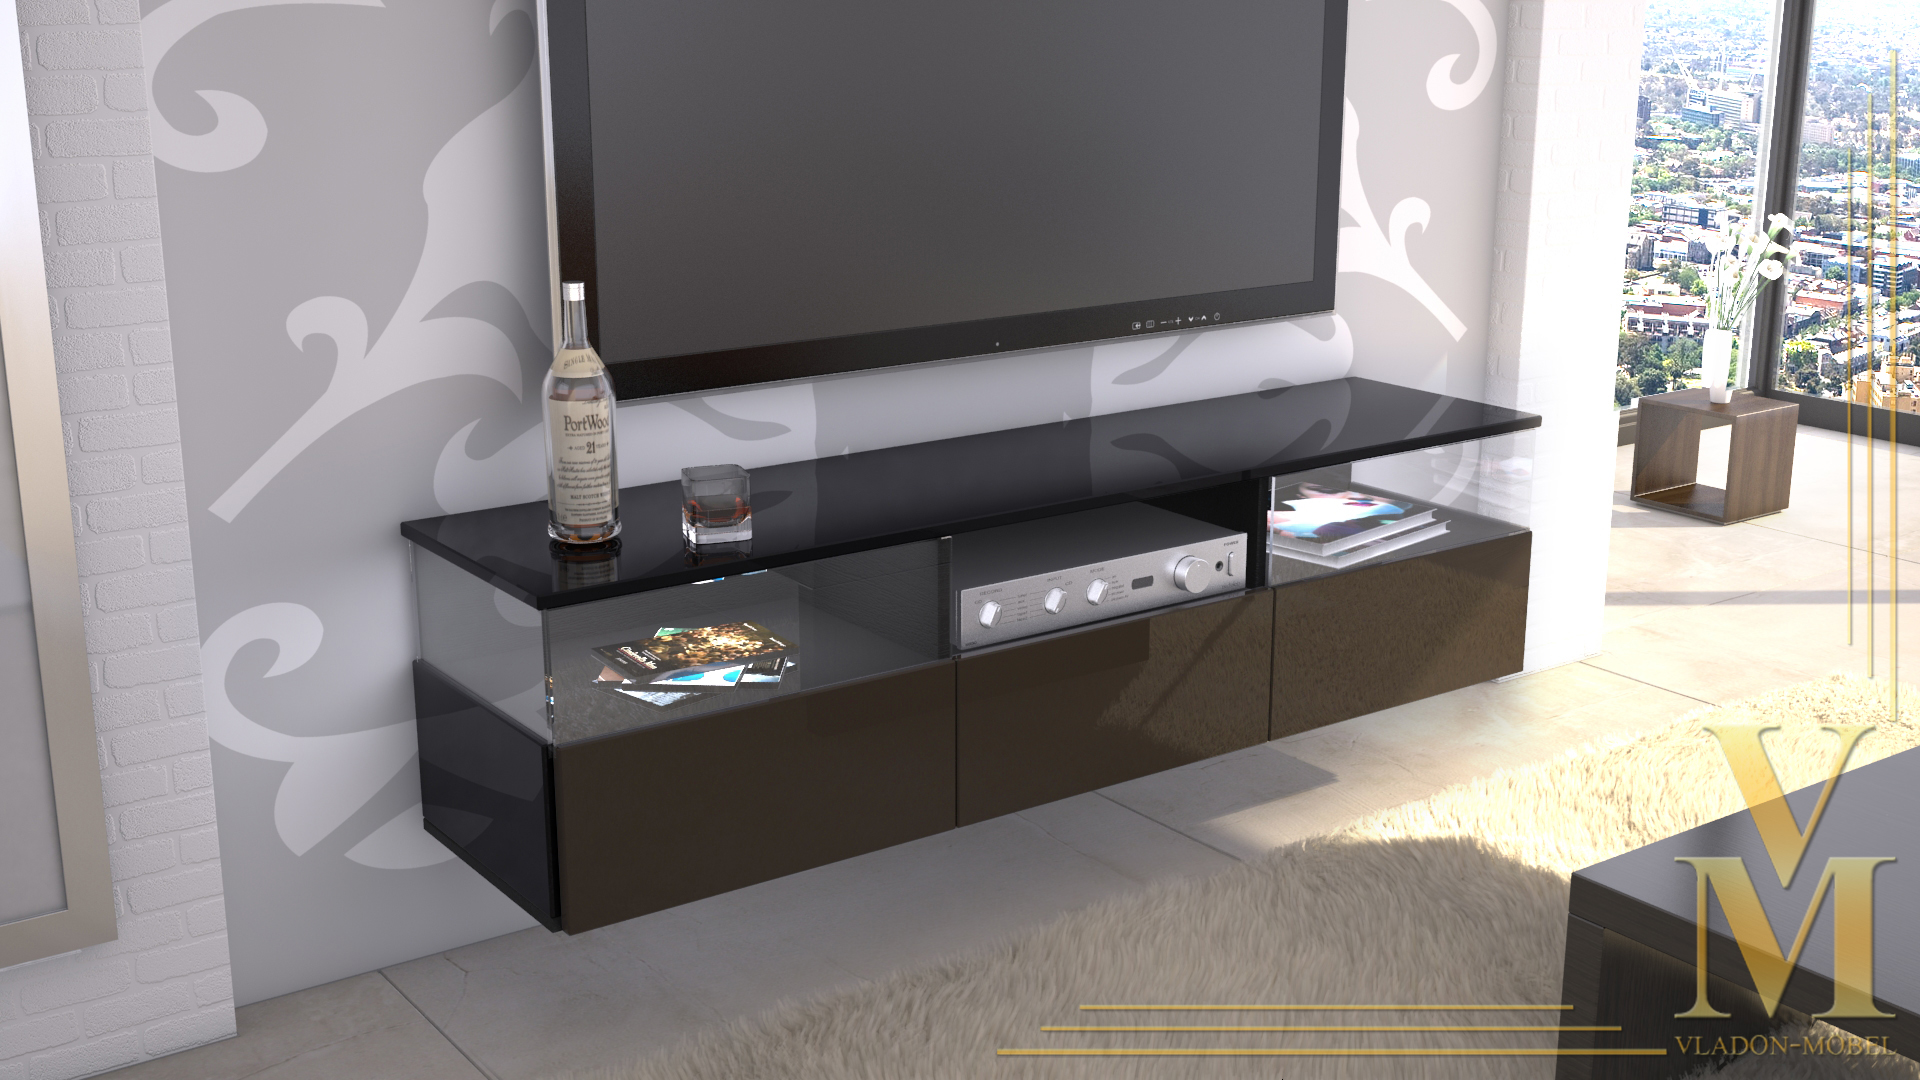 lowboard kommode tv board unterschrank almeria schwarz hochglanz naturt ne ebay. Black Bedroom Furniture Sets. Home Design Ideas